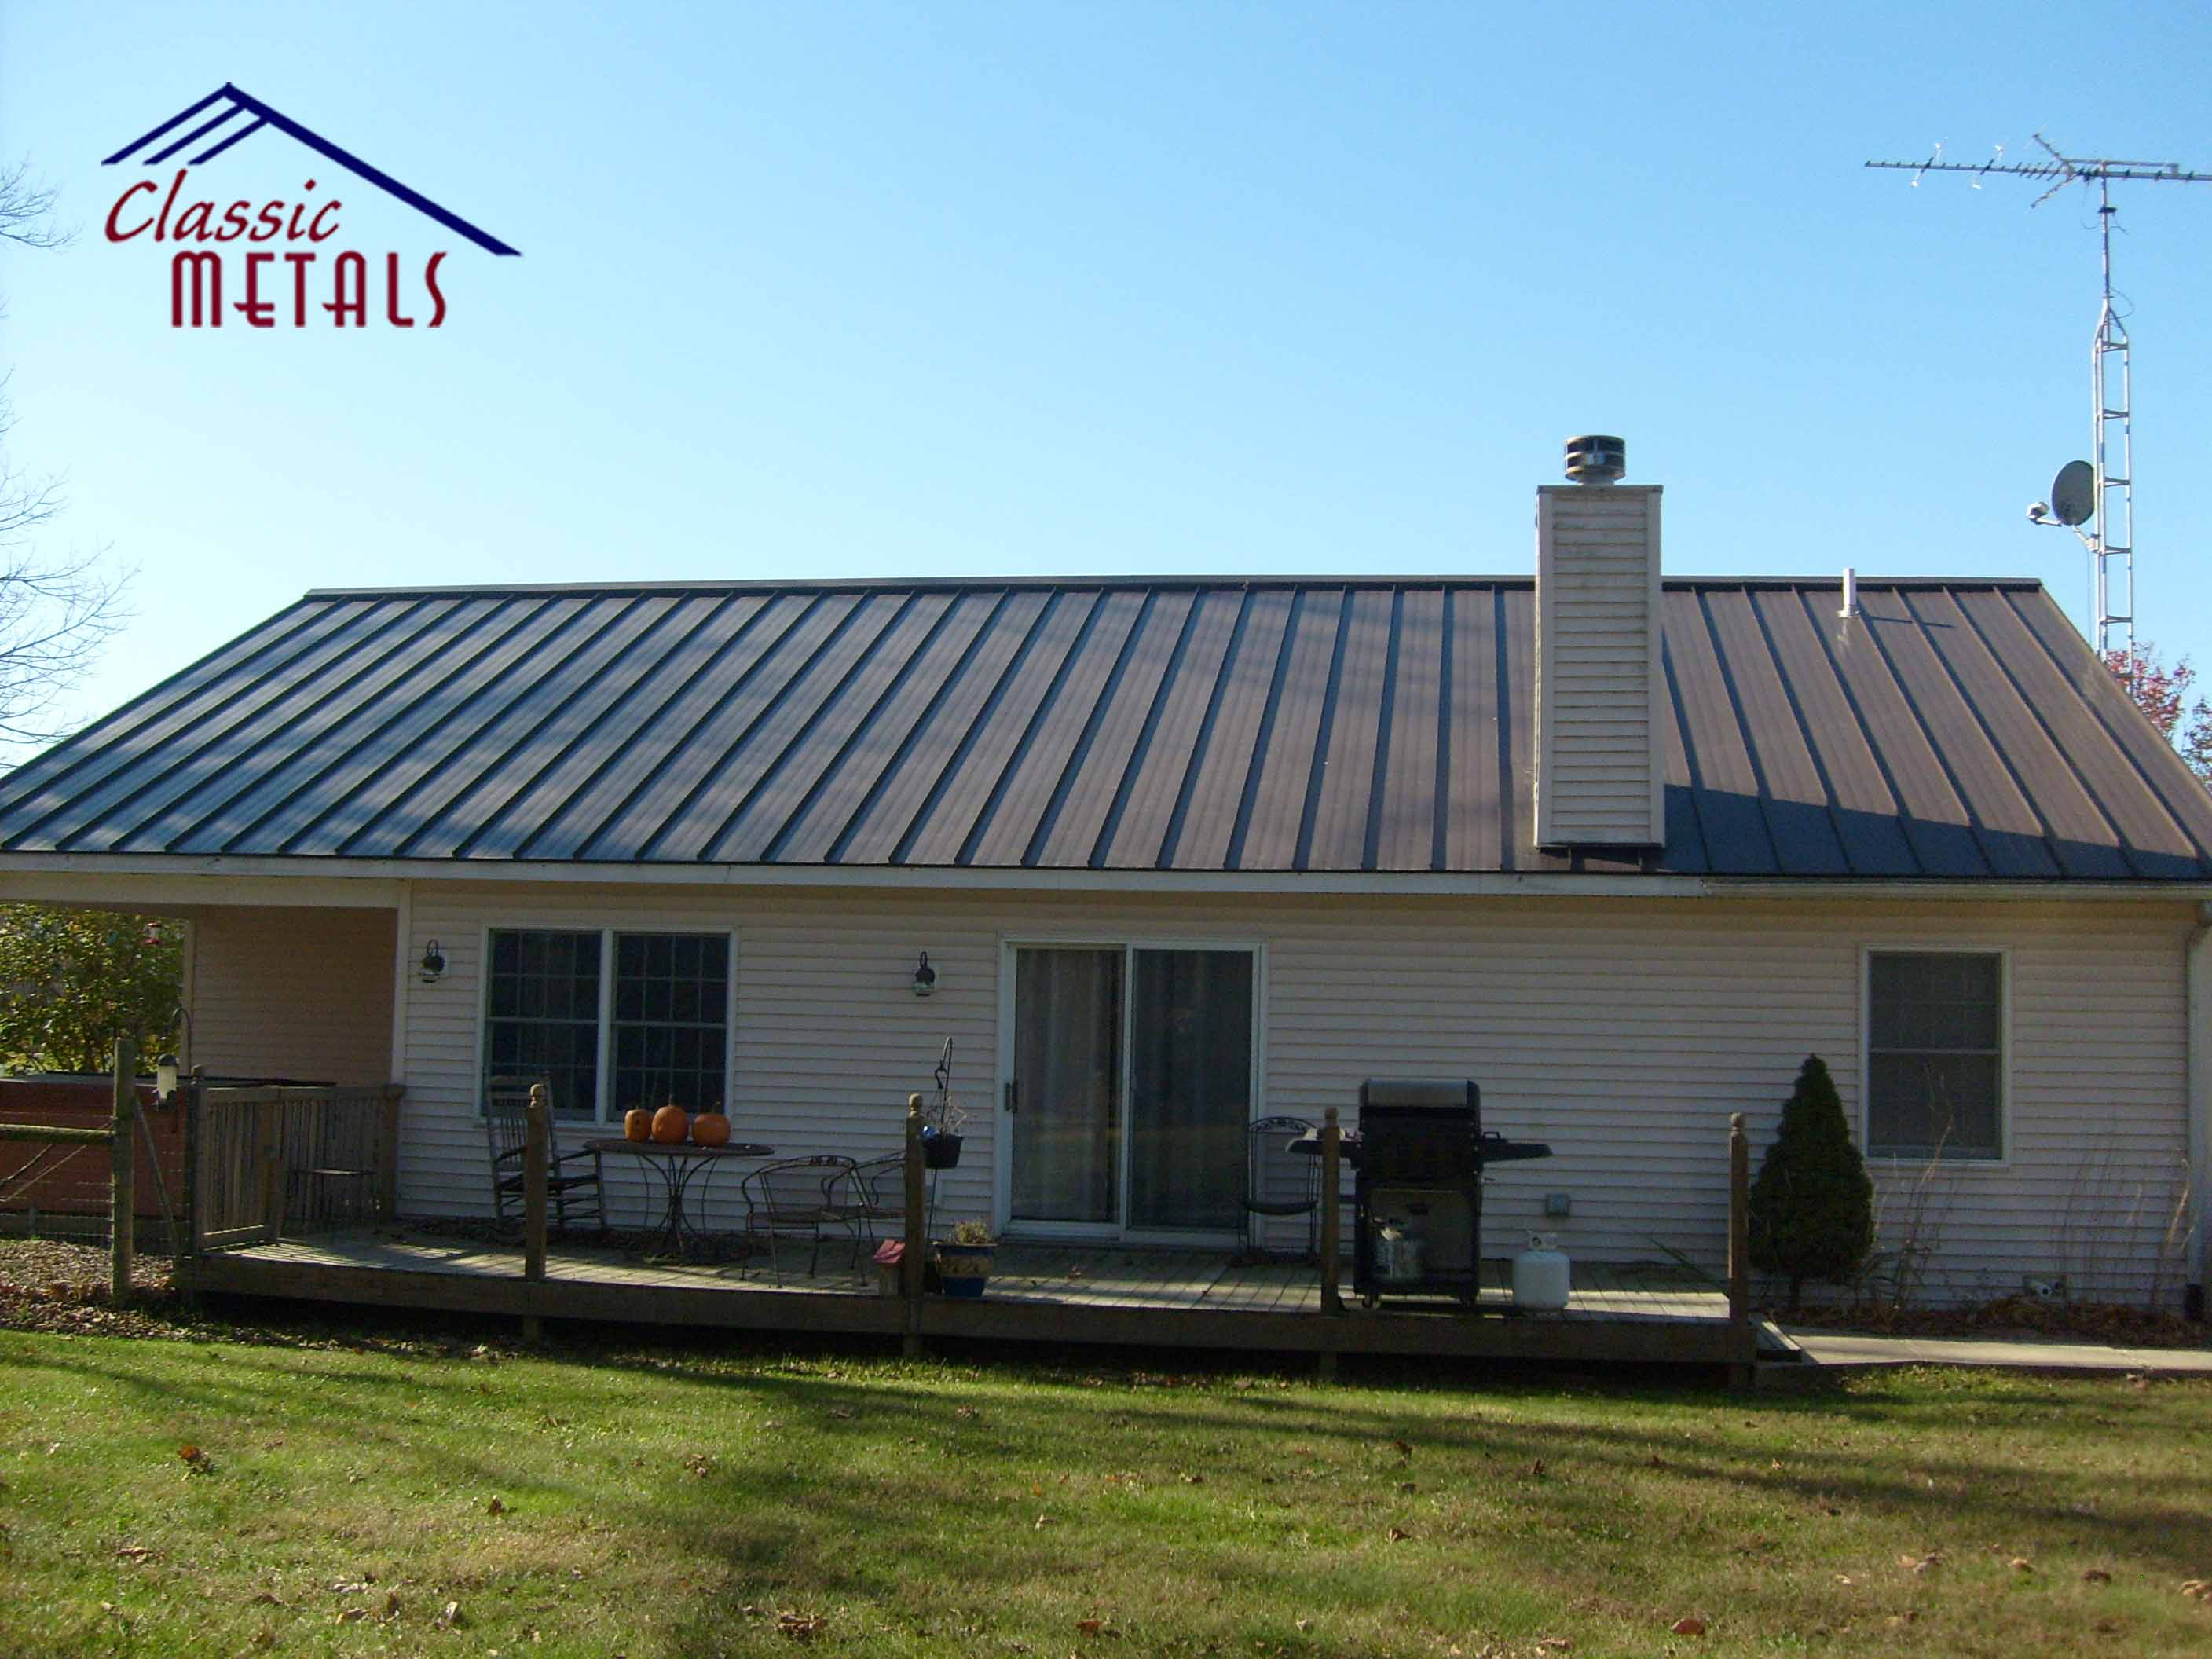 Eterna Guard Classic Metals Quality Metal Roofing And